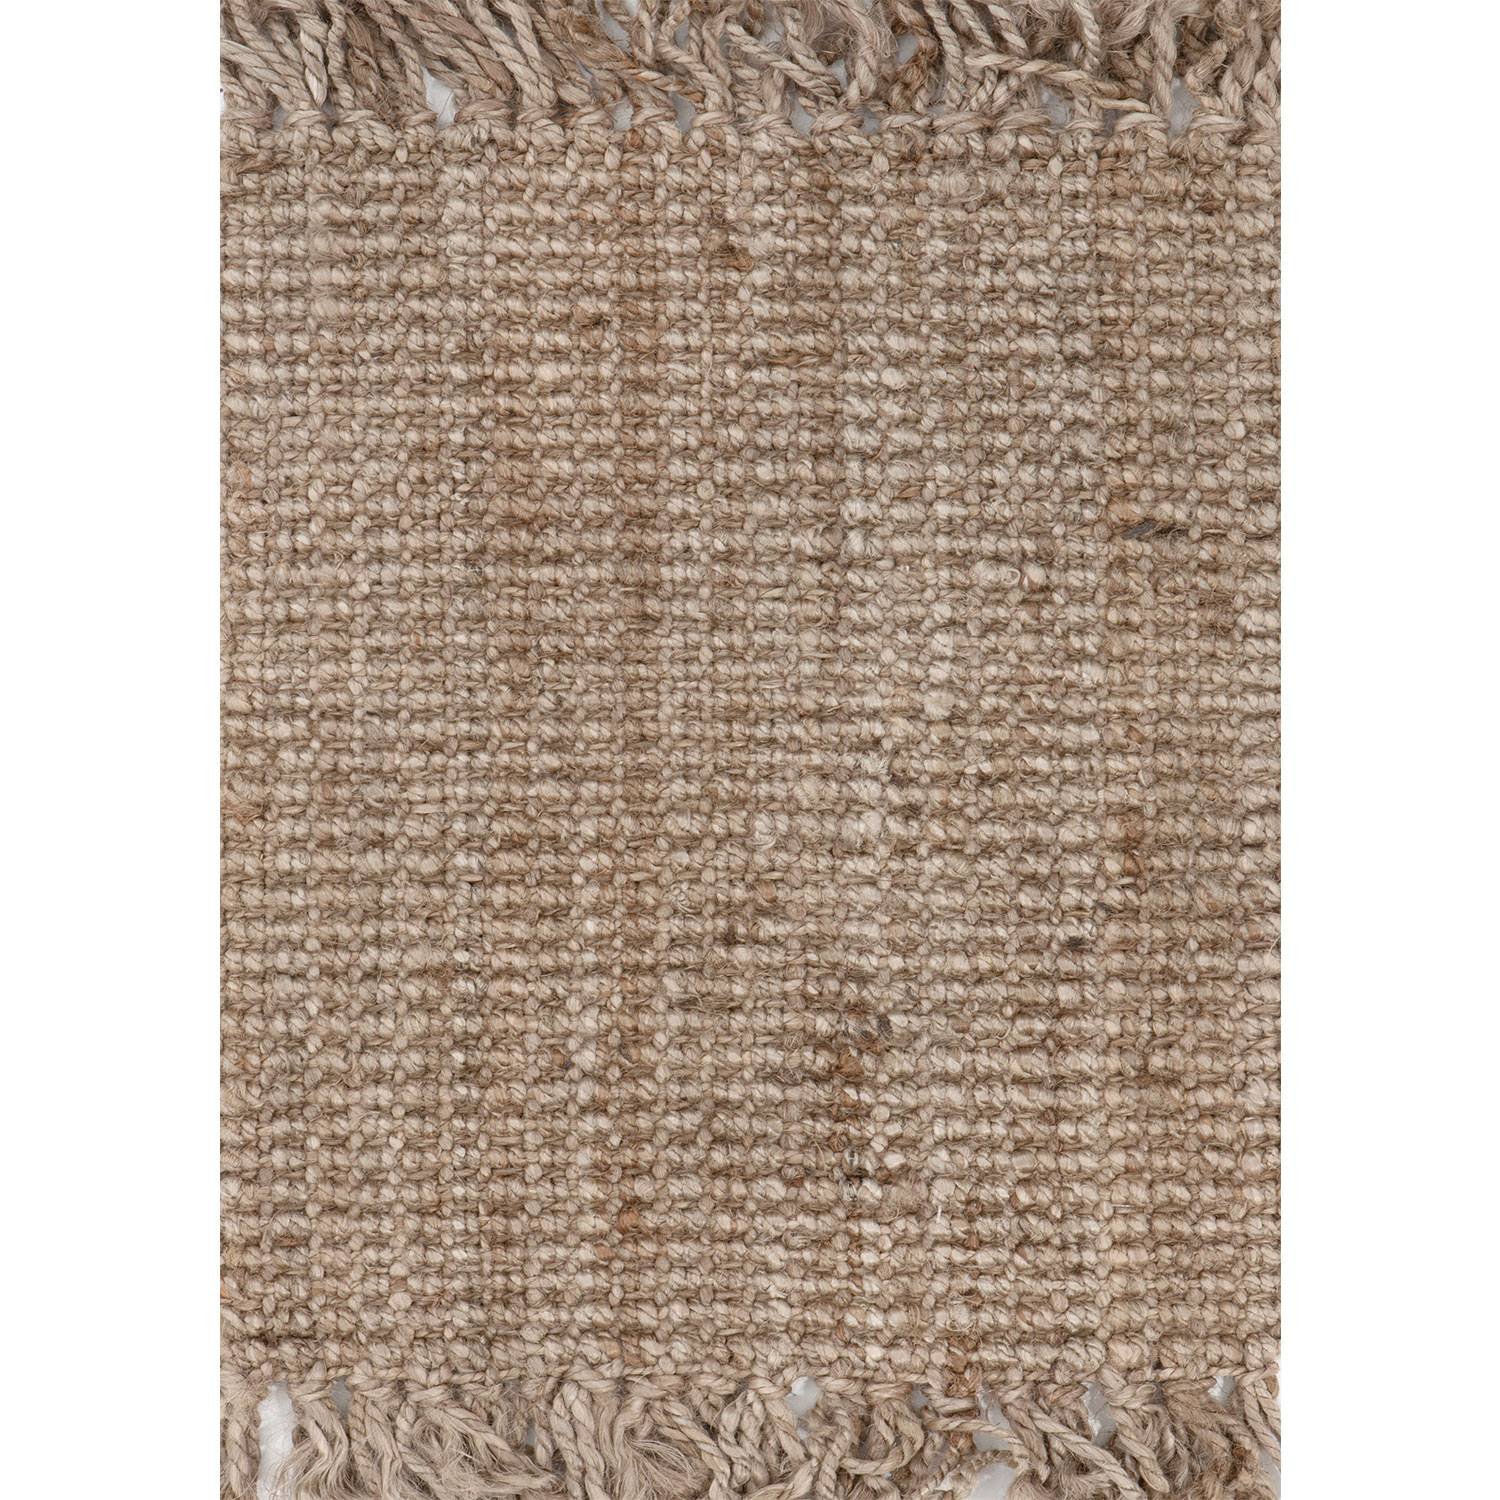 Linie Design Surface Matto 130x190cm, Natural